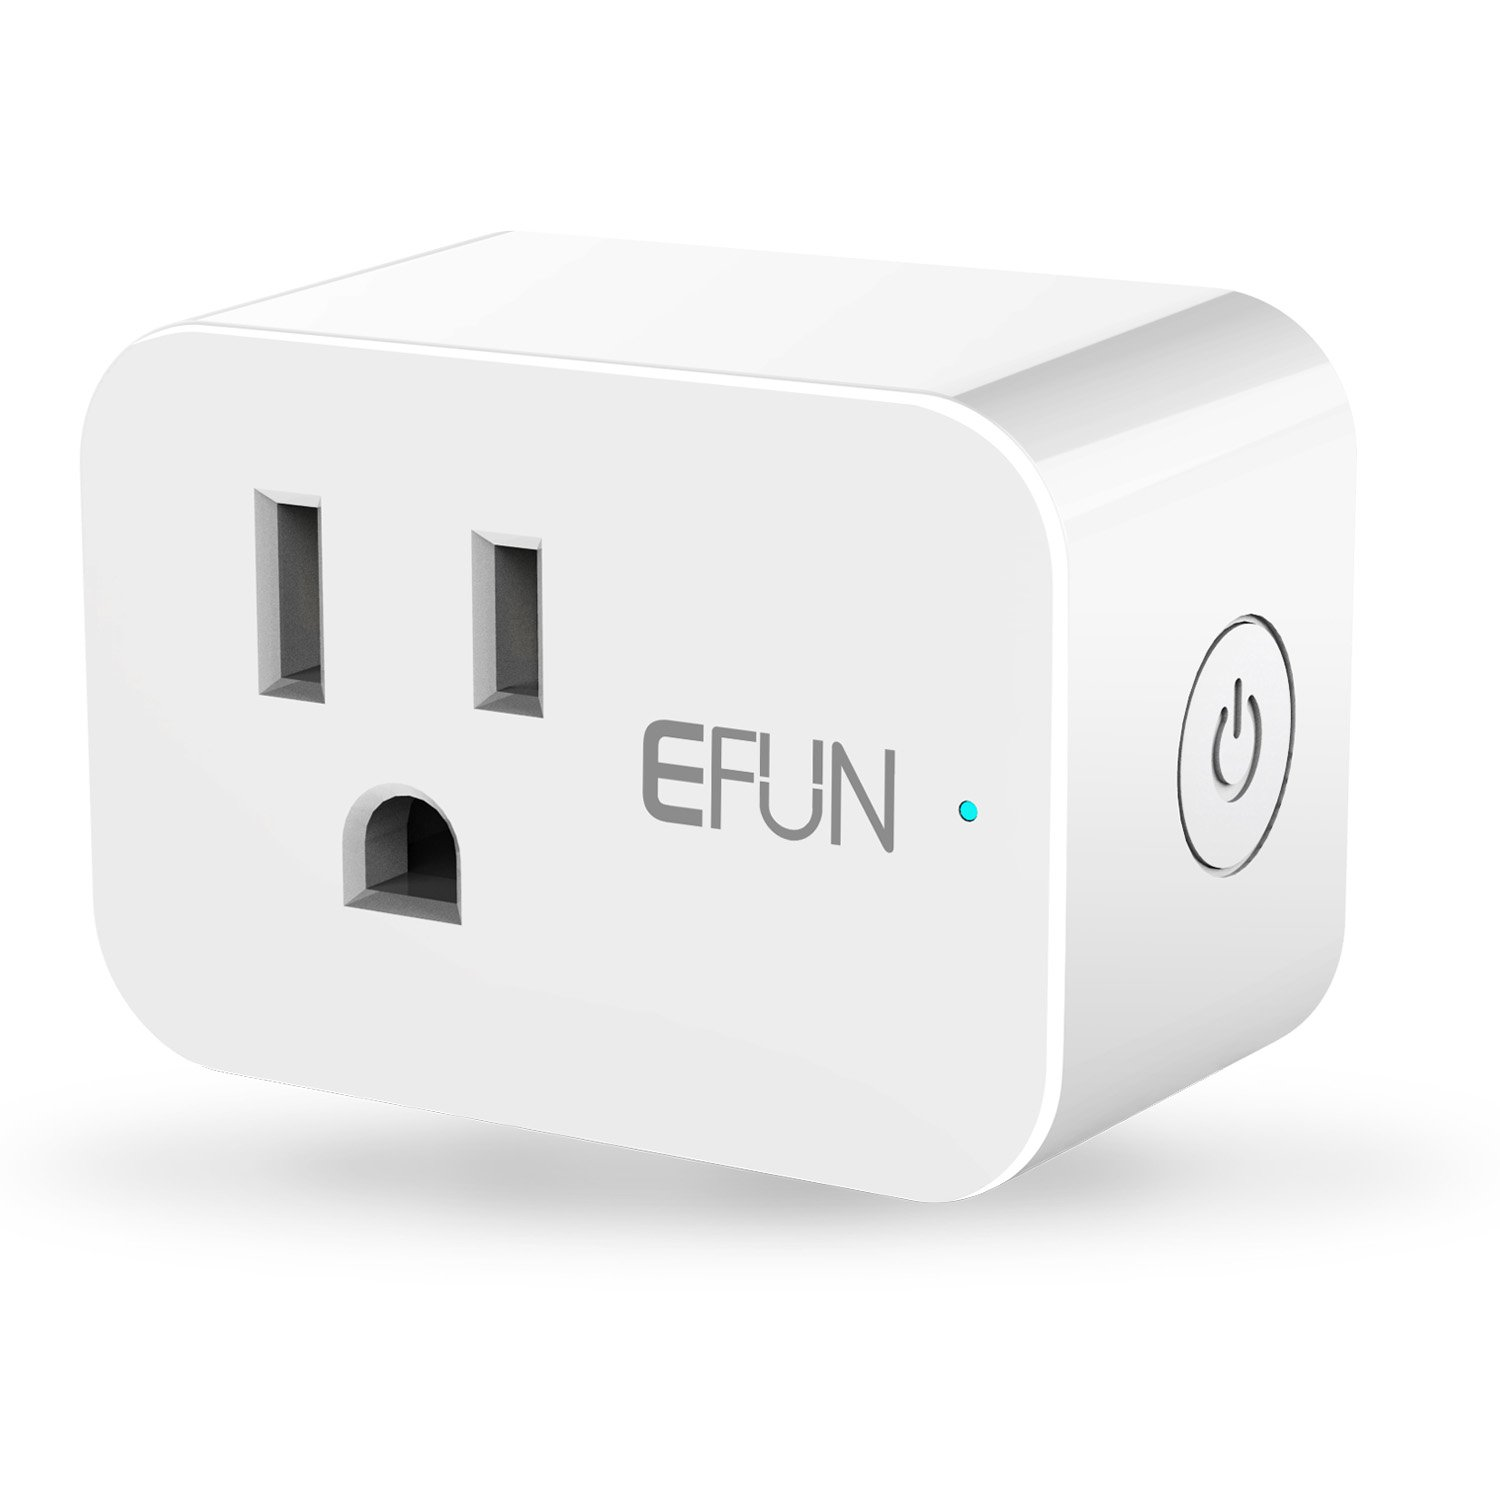 EFUN SH331W Wi-Fi Smart Plug Mini Outlet with Energy Montoring,No Hub Required,Overload Protection,Fire Retardant Material,Space Saving,Works with Alexa and Google Assistant